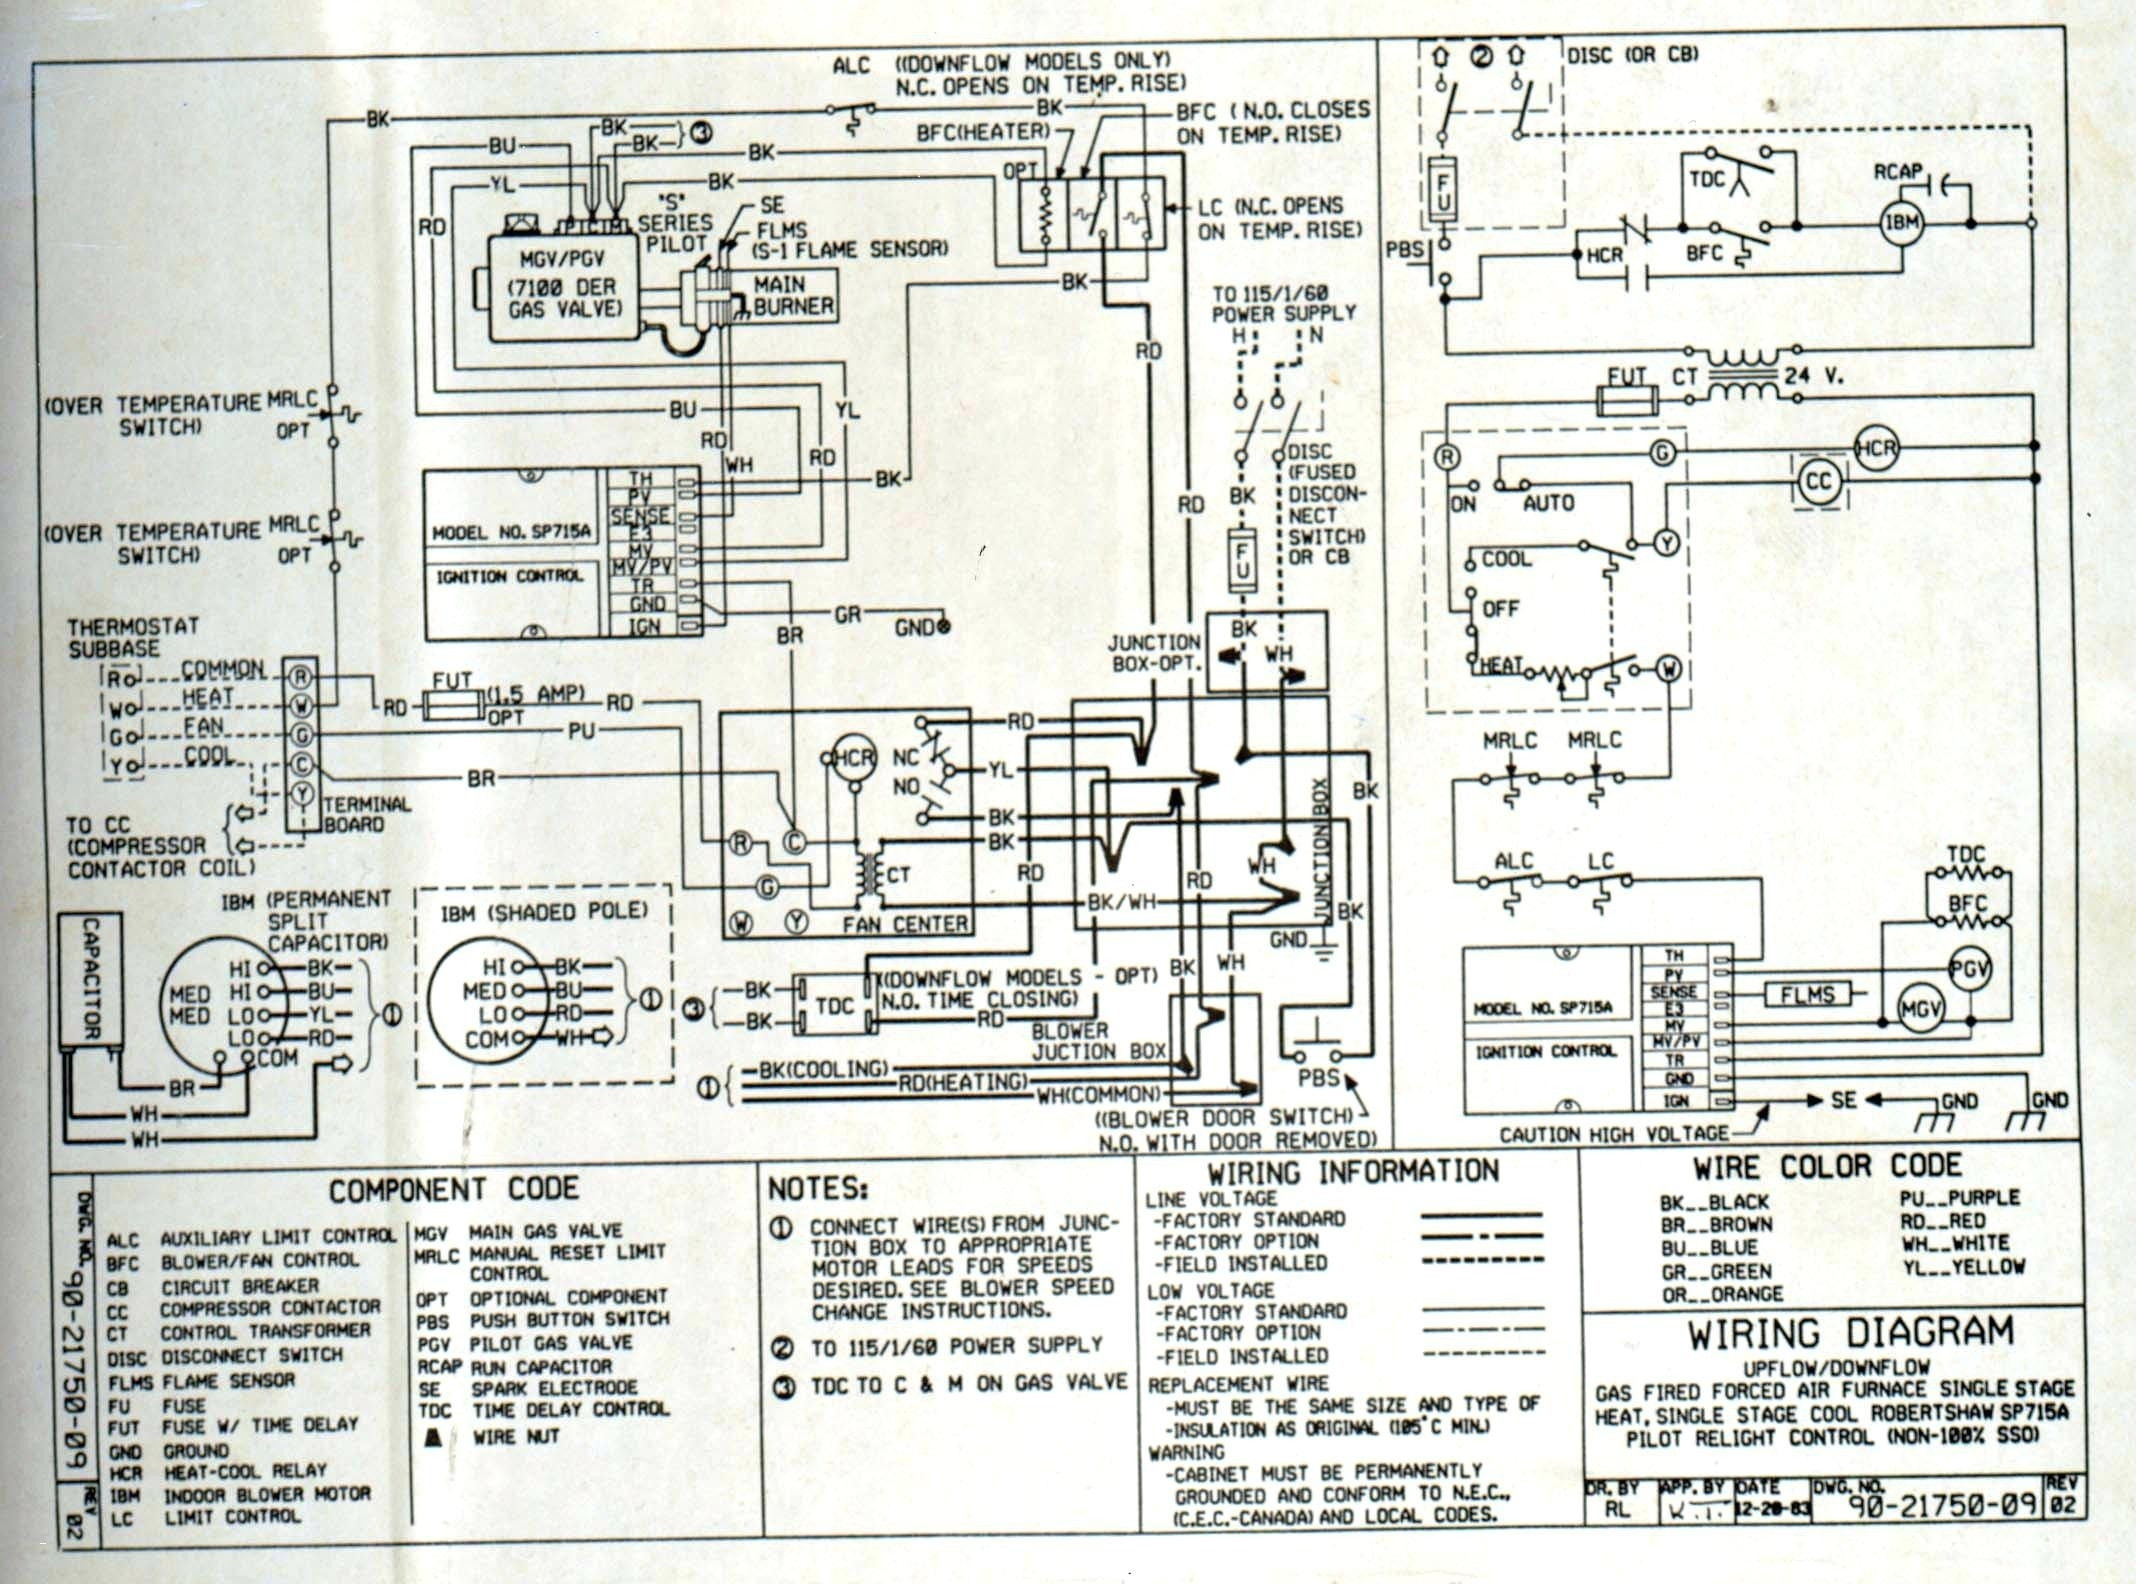 electric furnace wiring diagram Collection-Wiring Diagram Electric Furnace Fresh Goodman Gas Furnace Wiring Diagram Download 20-i